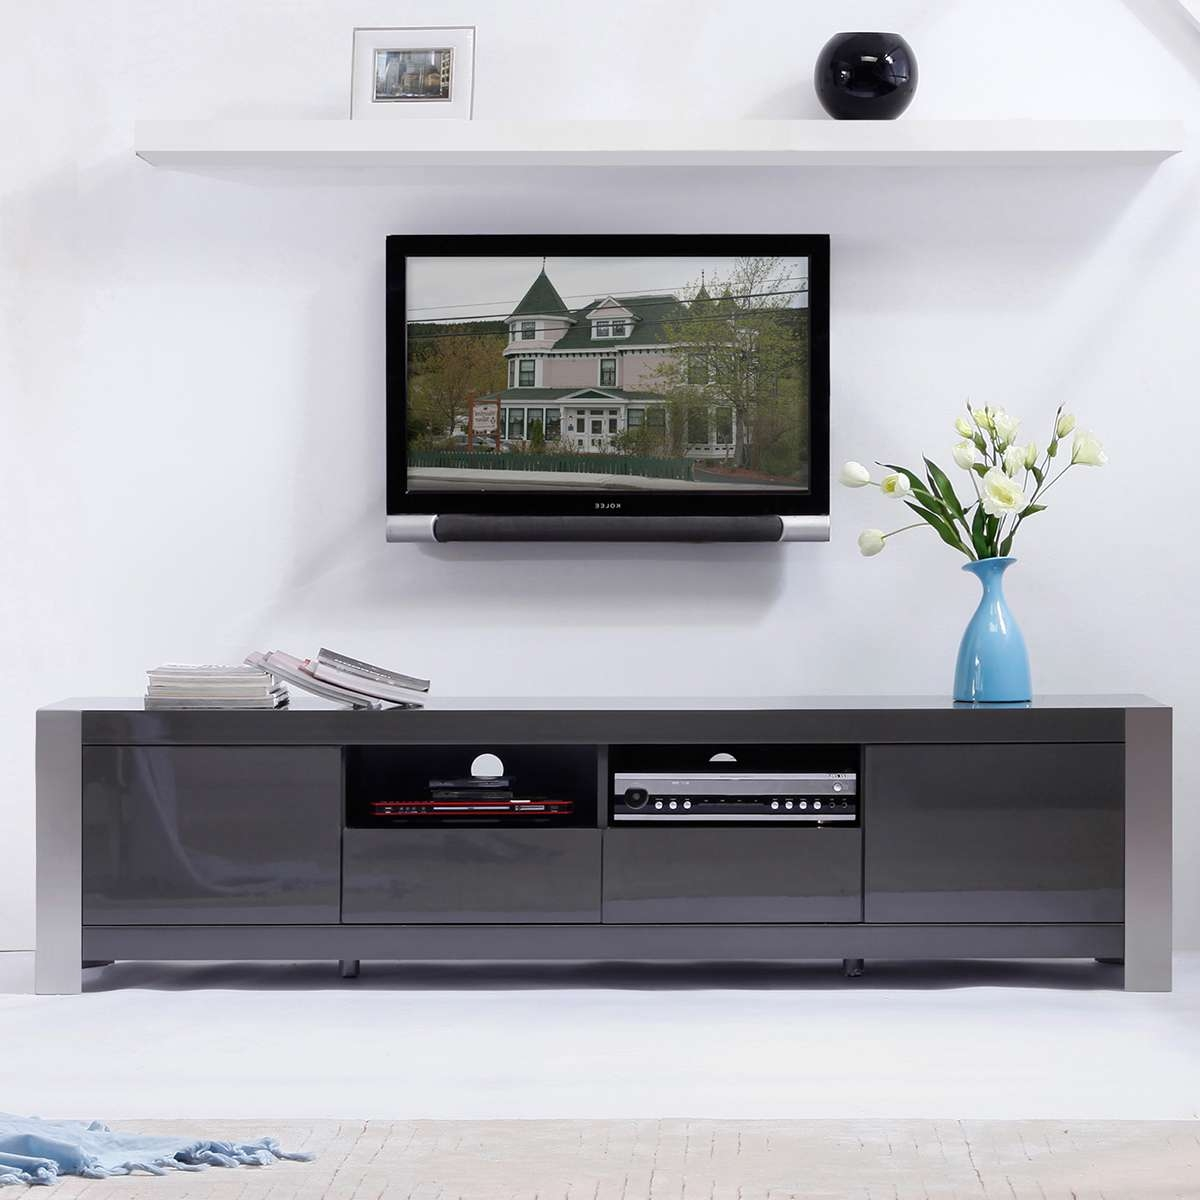 B Modern Minimalist Design Contemporary Tv Stands & Furniture At Regarding Modern White Lacquer Tv Stands (View 2 of 15)